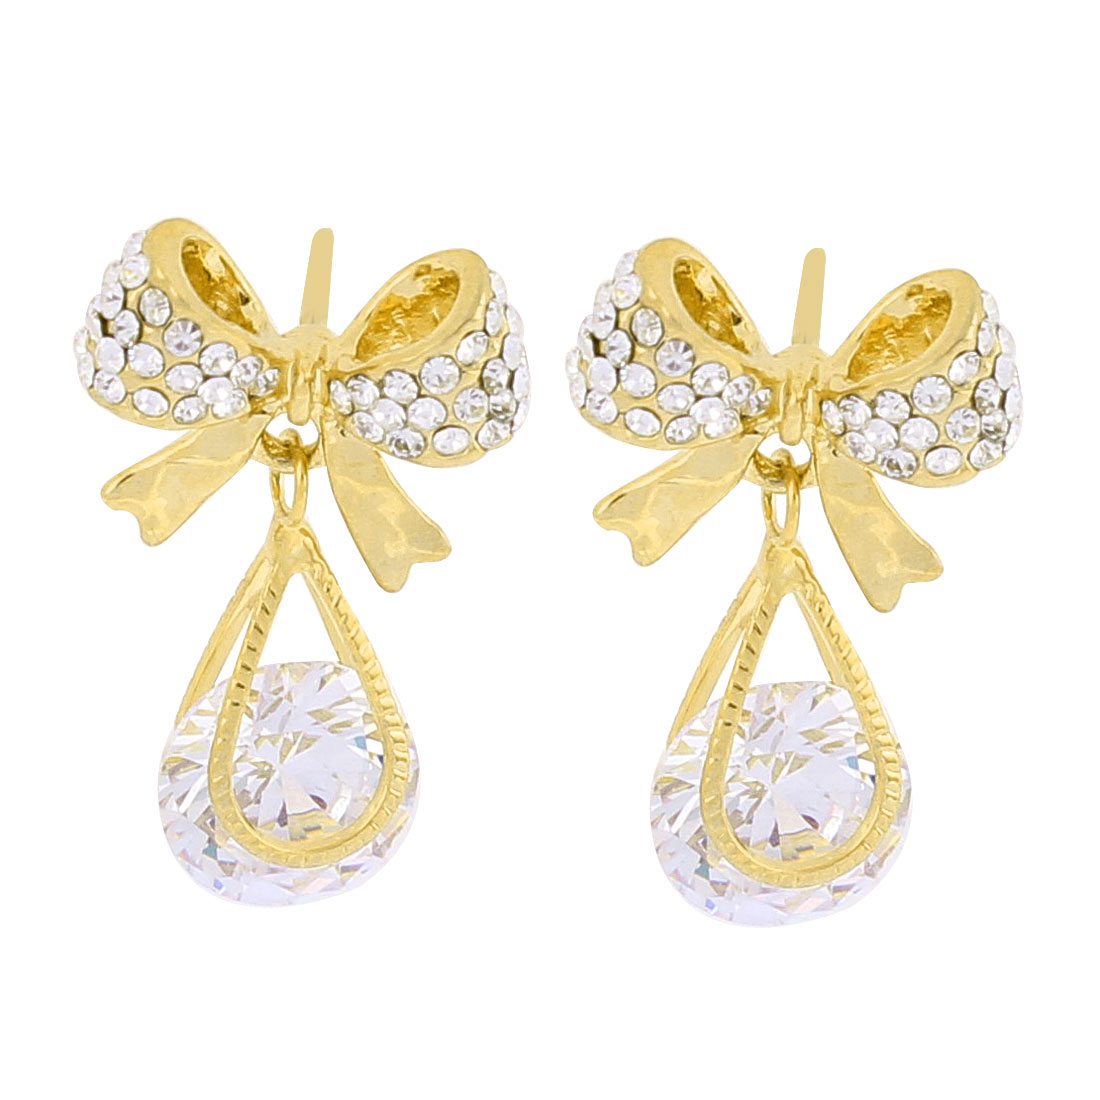 Faux Rhinestone Pandent Detail Bowknot Stud Earrings Ear Pins Nails Gold Tone Pair for Woman